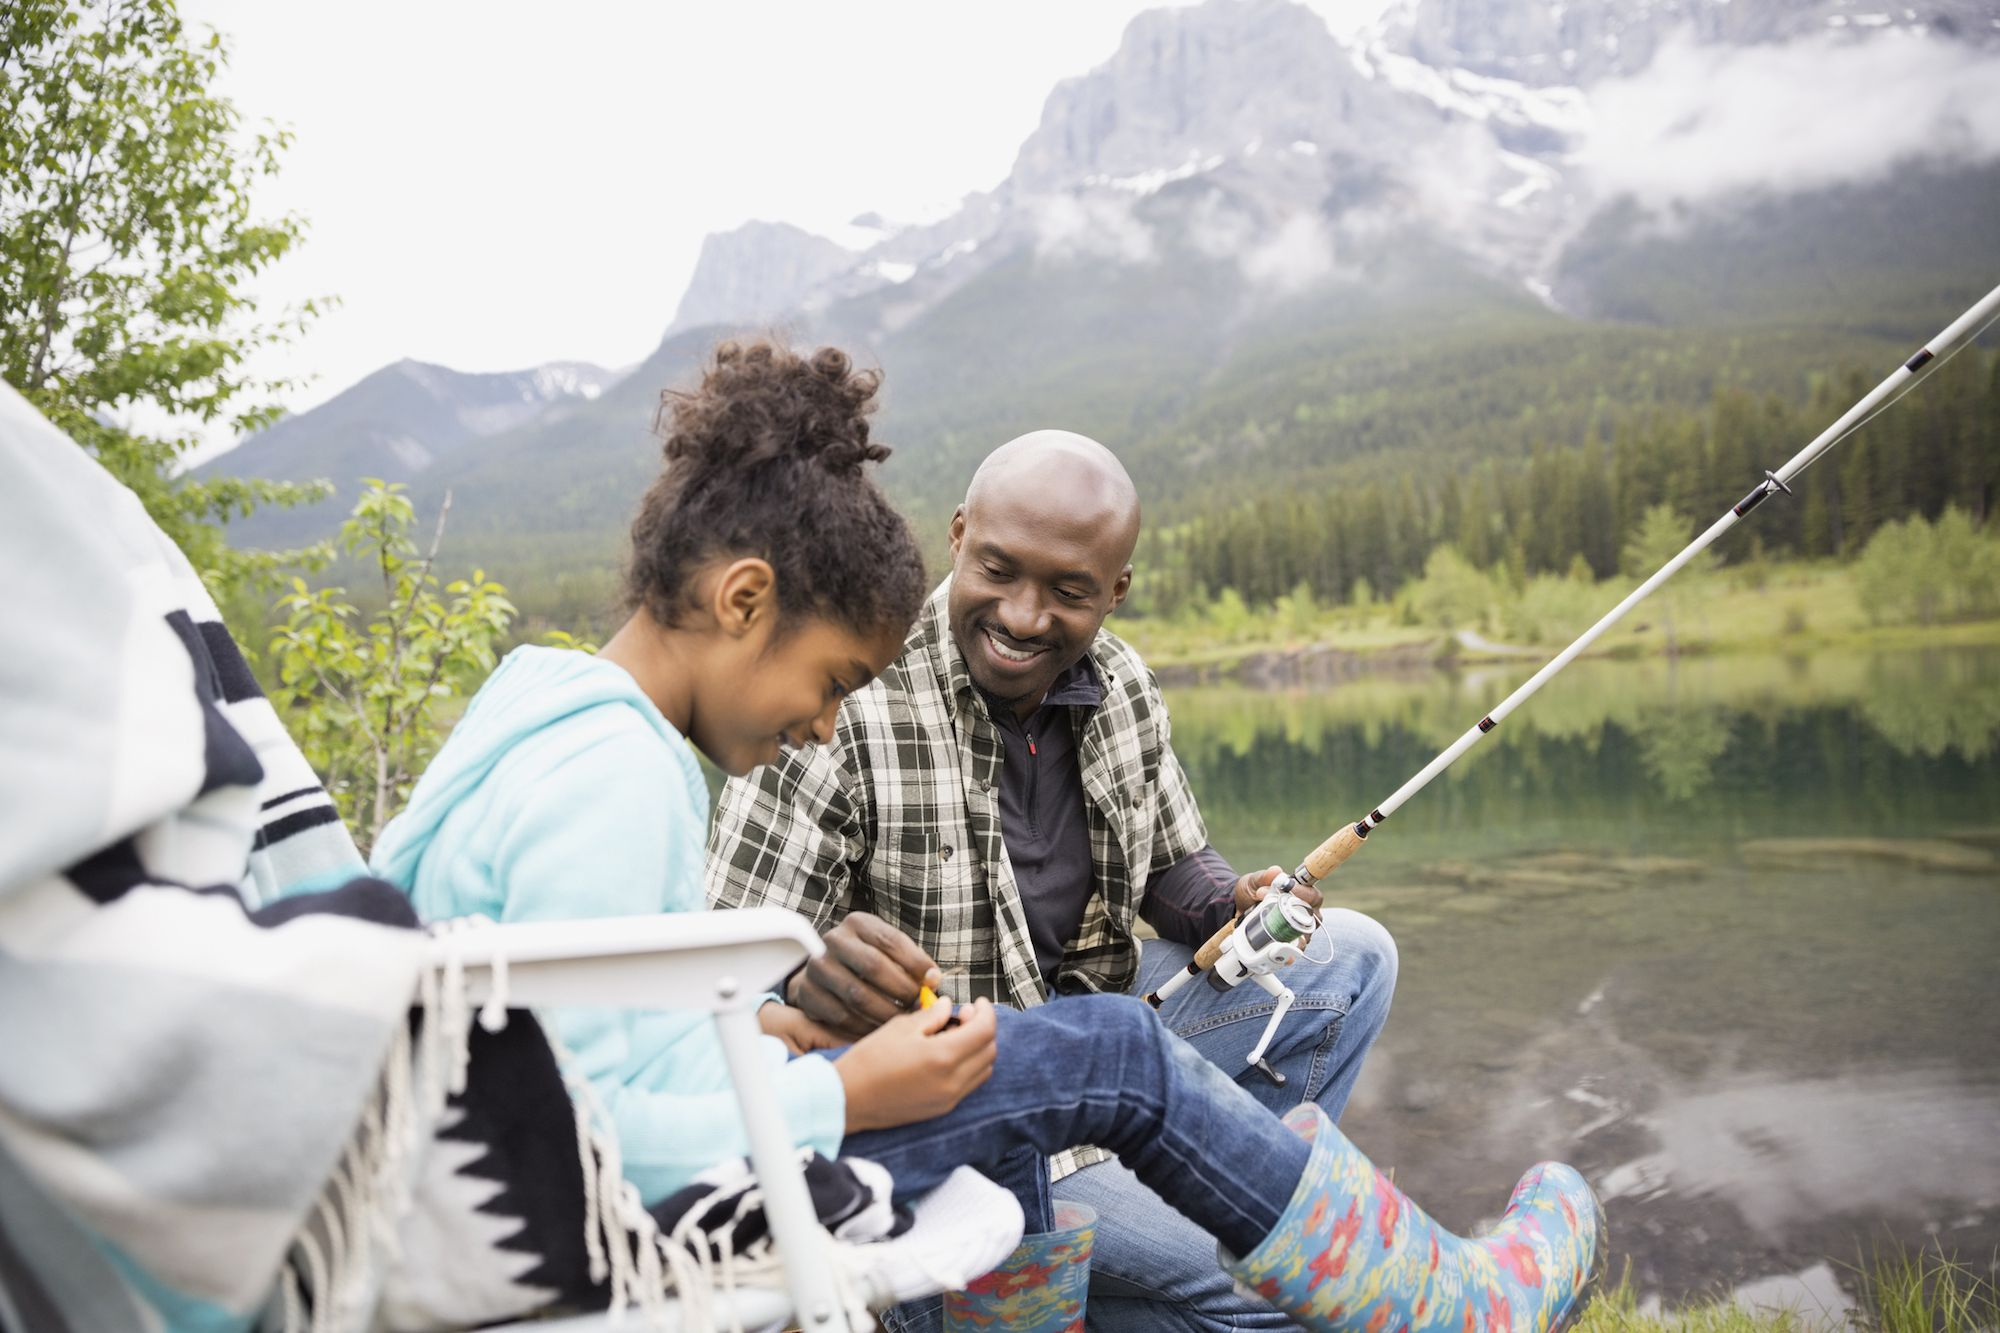 What Beginners Should Know About Learning To Fish